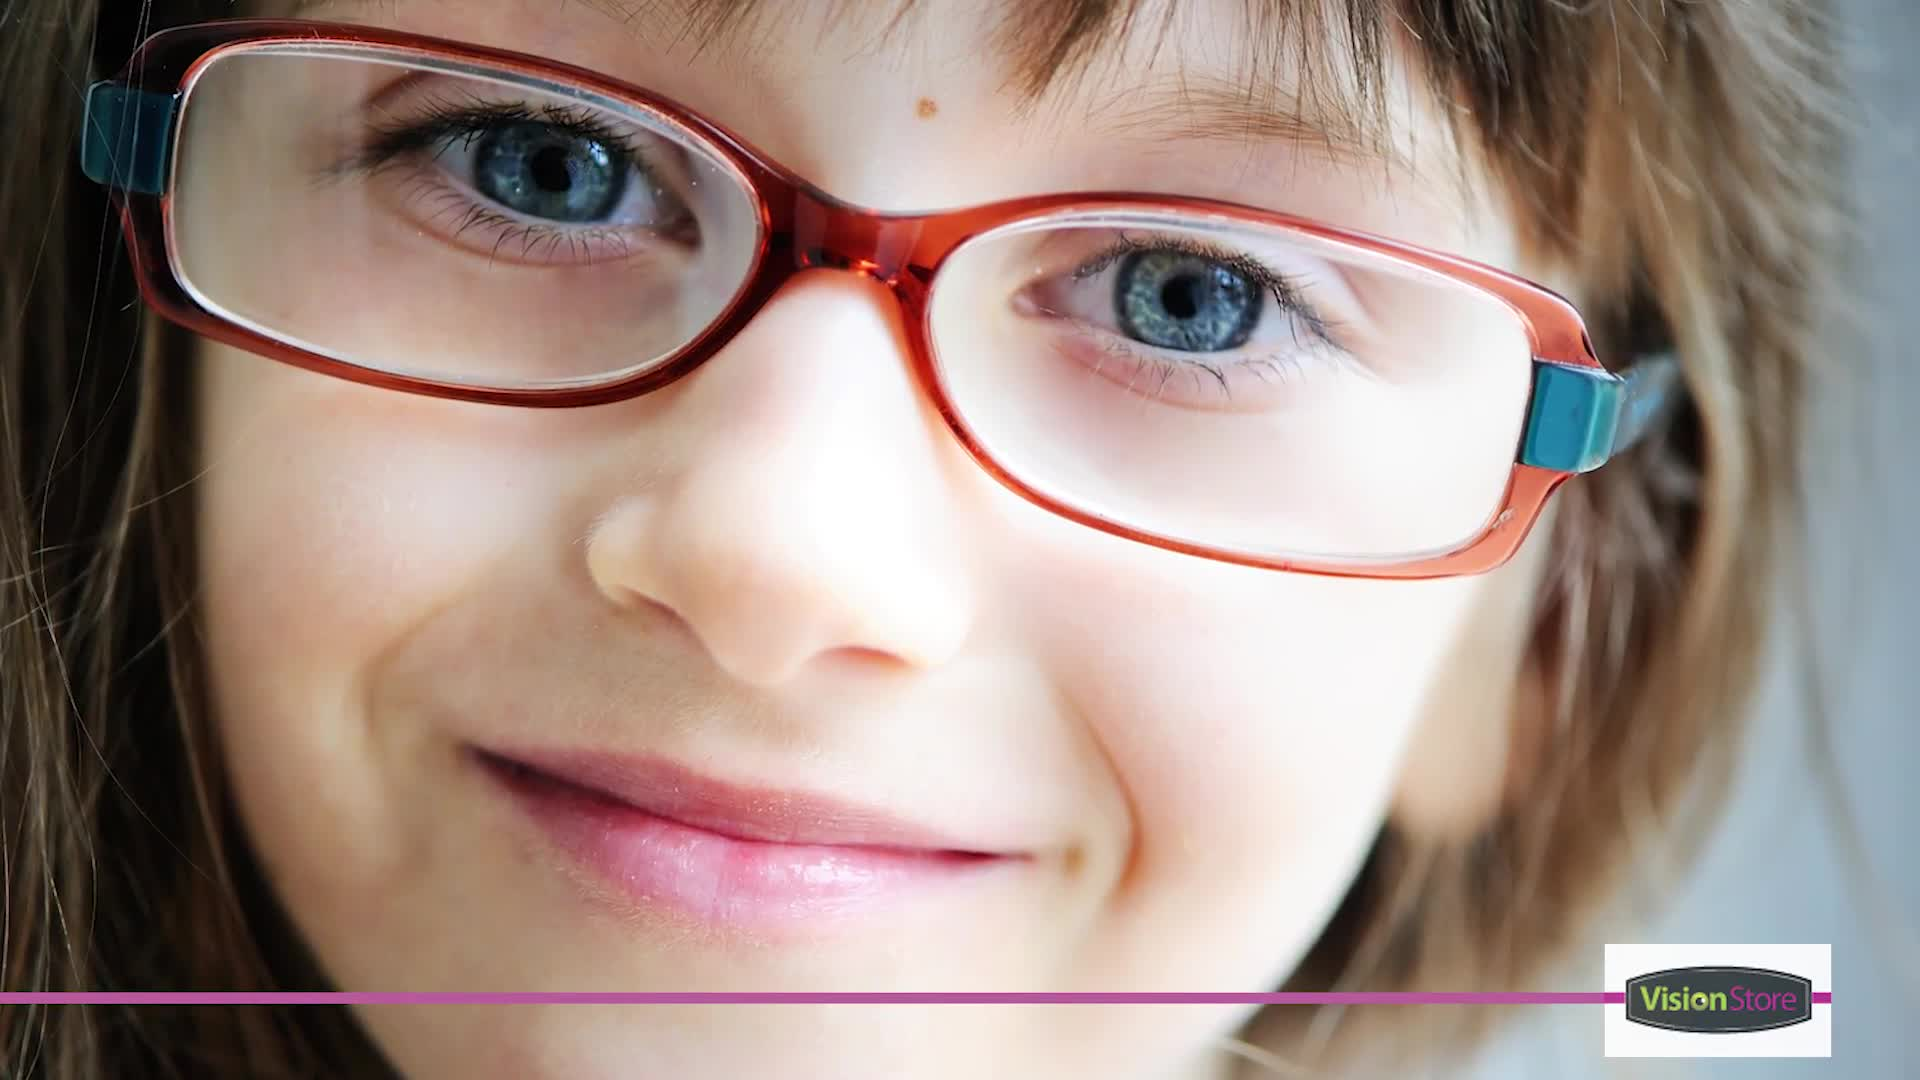 Vision Store - Optometrists - 705-726-2020